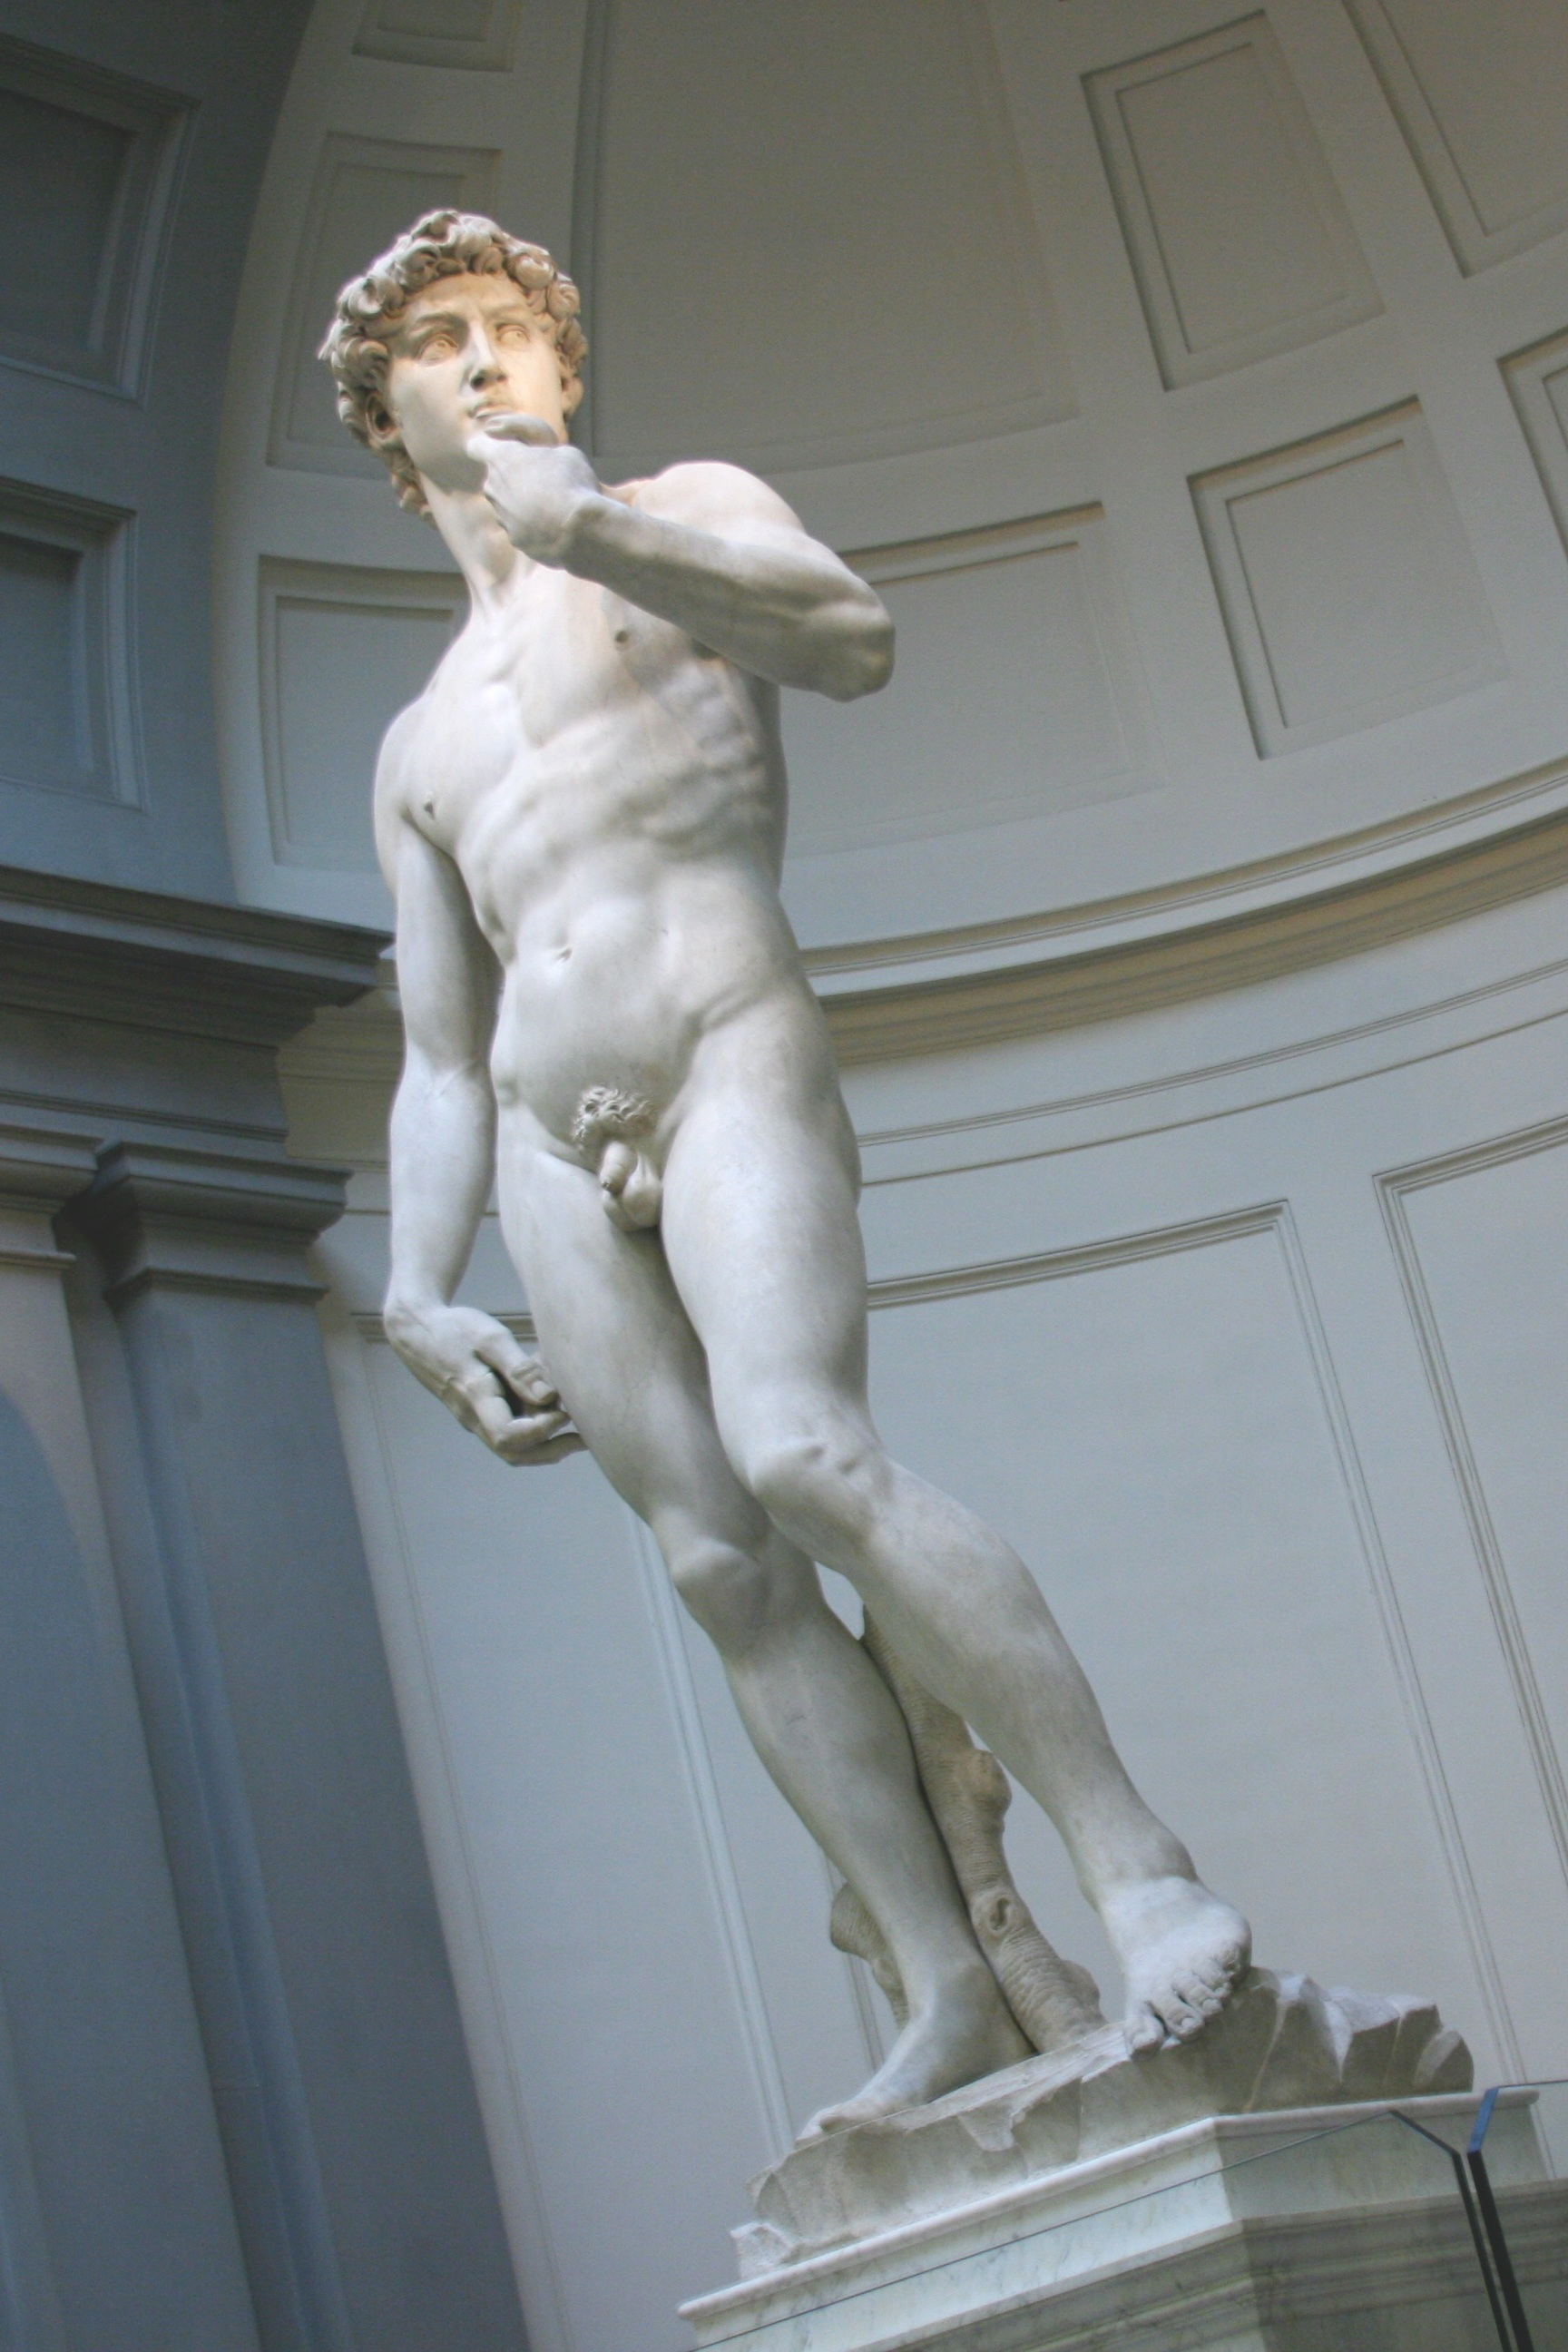 michelangelo+david+florence+sculpture.jpg